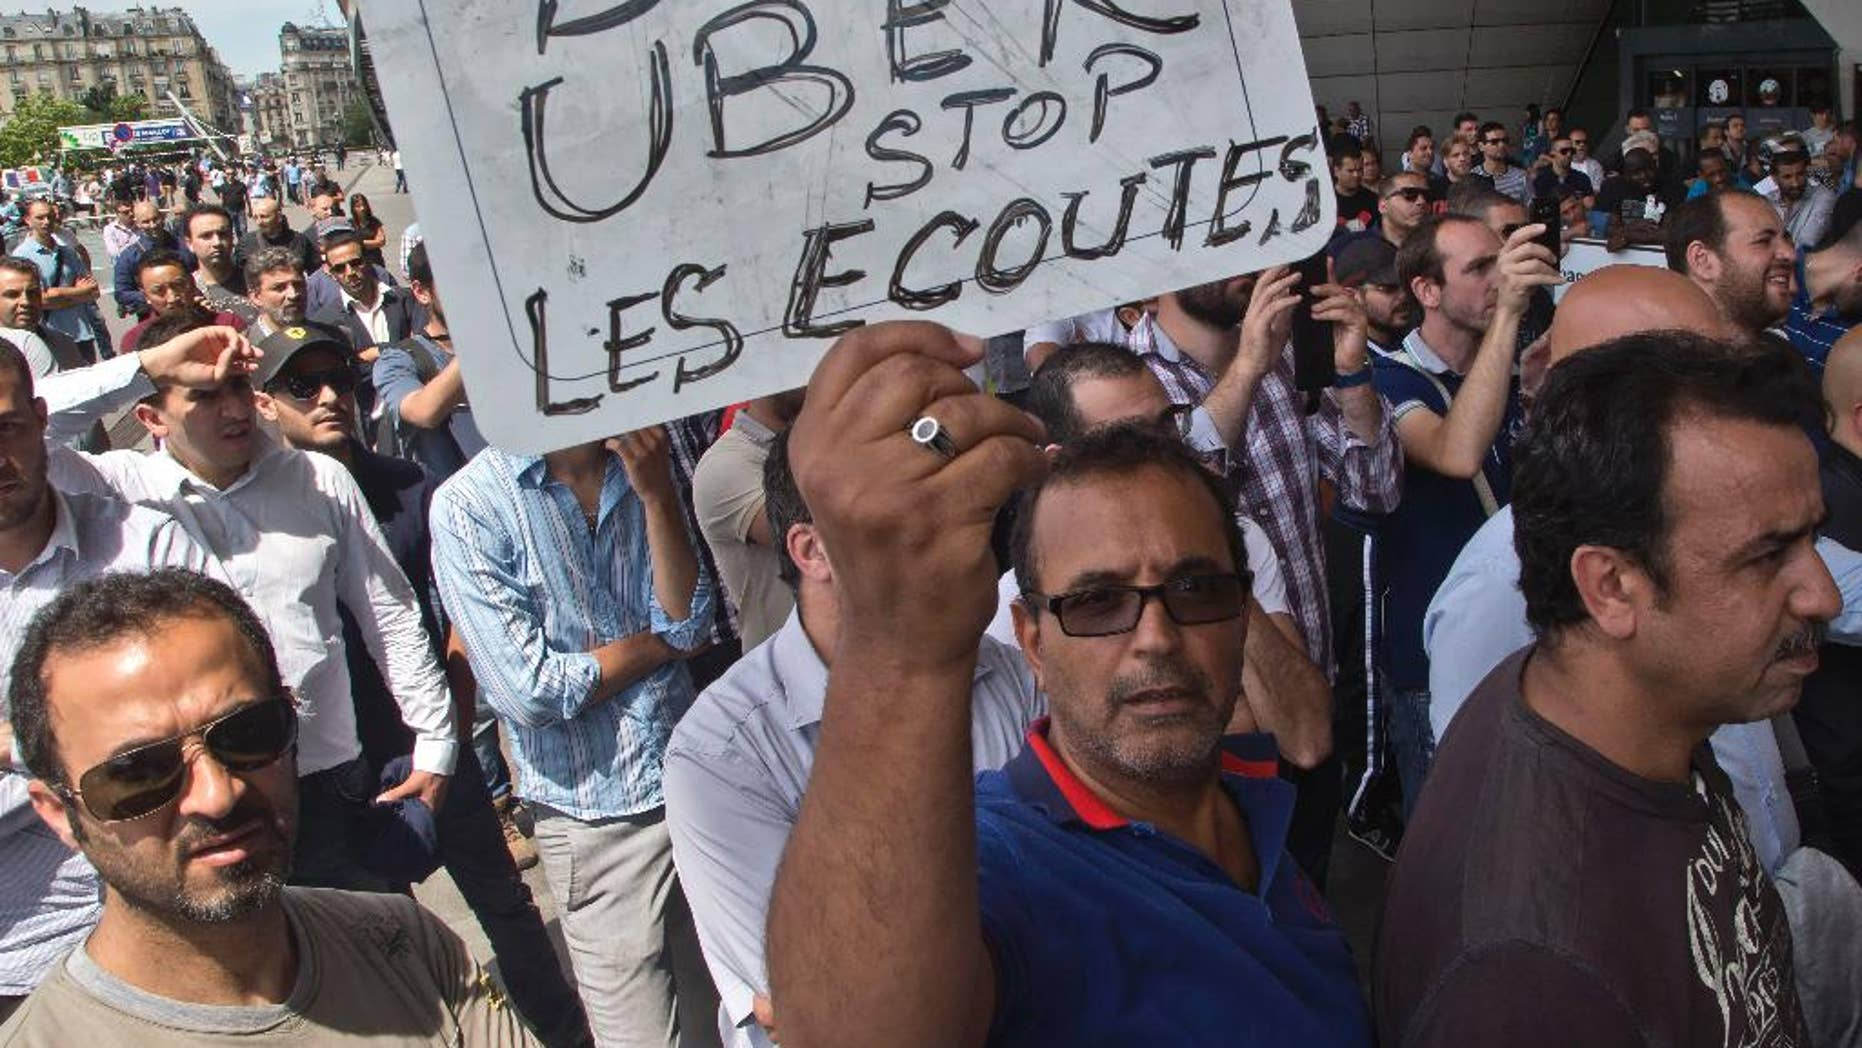 """FILE - This Thursday, June 25, 2015 file photo shows a striking taxi driver holding a placard which read, """"Stop Uber, Stop listening,"""" referring to the new US spying report in France, during a taxi drivers demonstration in Paris, France. French authorities took two Uber managers into custody for questioning on Monday over """"illicit activity"""" involving its low-cost service. The detentions came amid rising tensions between the government and the ride-hailing company, which culminated last week in a violence-marred taxi strike that blocked roads around the country. (AP Photo/Michel Euler, File)"""